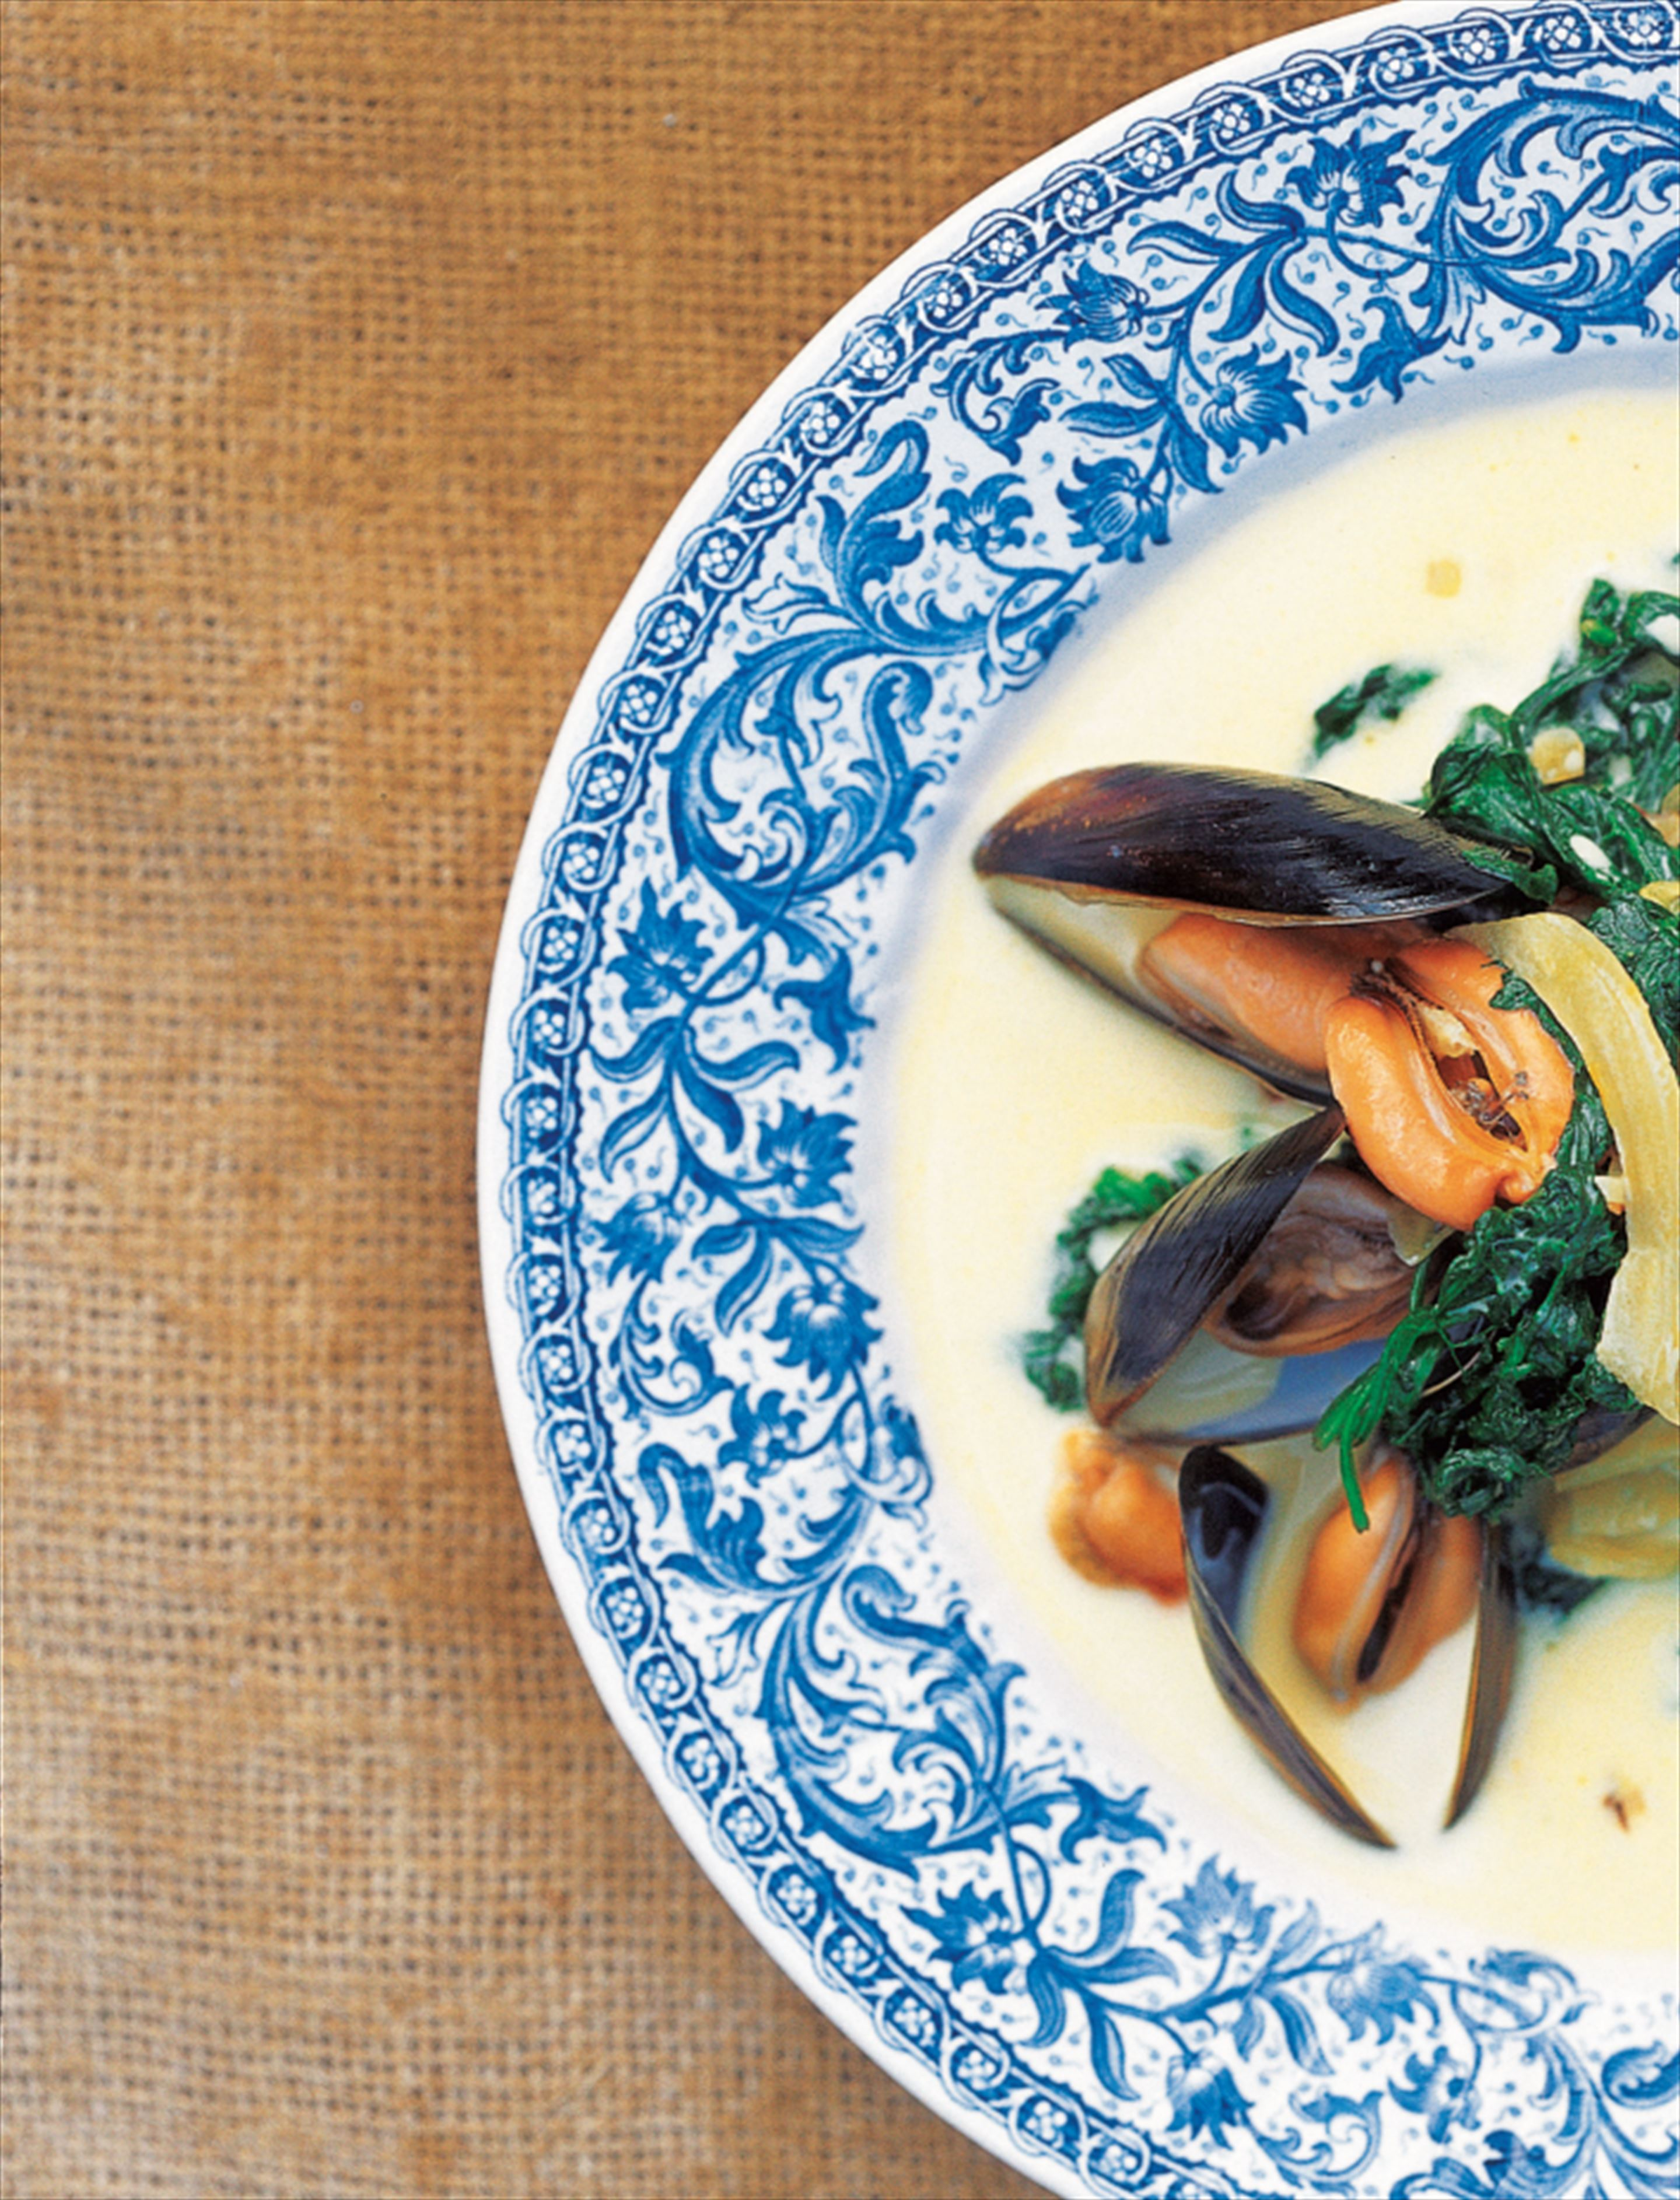 Mussels with fennel, saffron and spinach